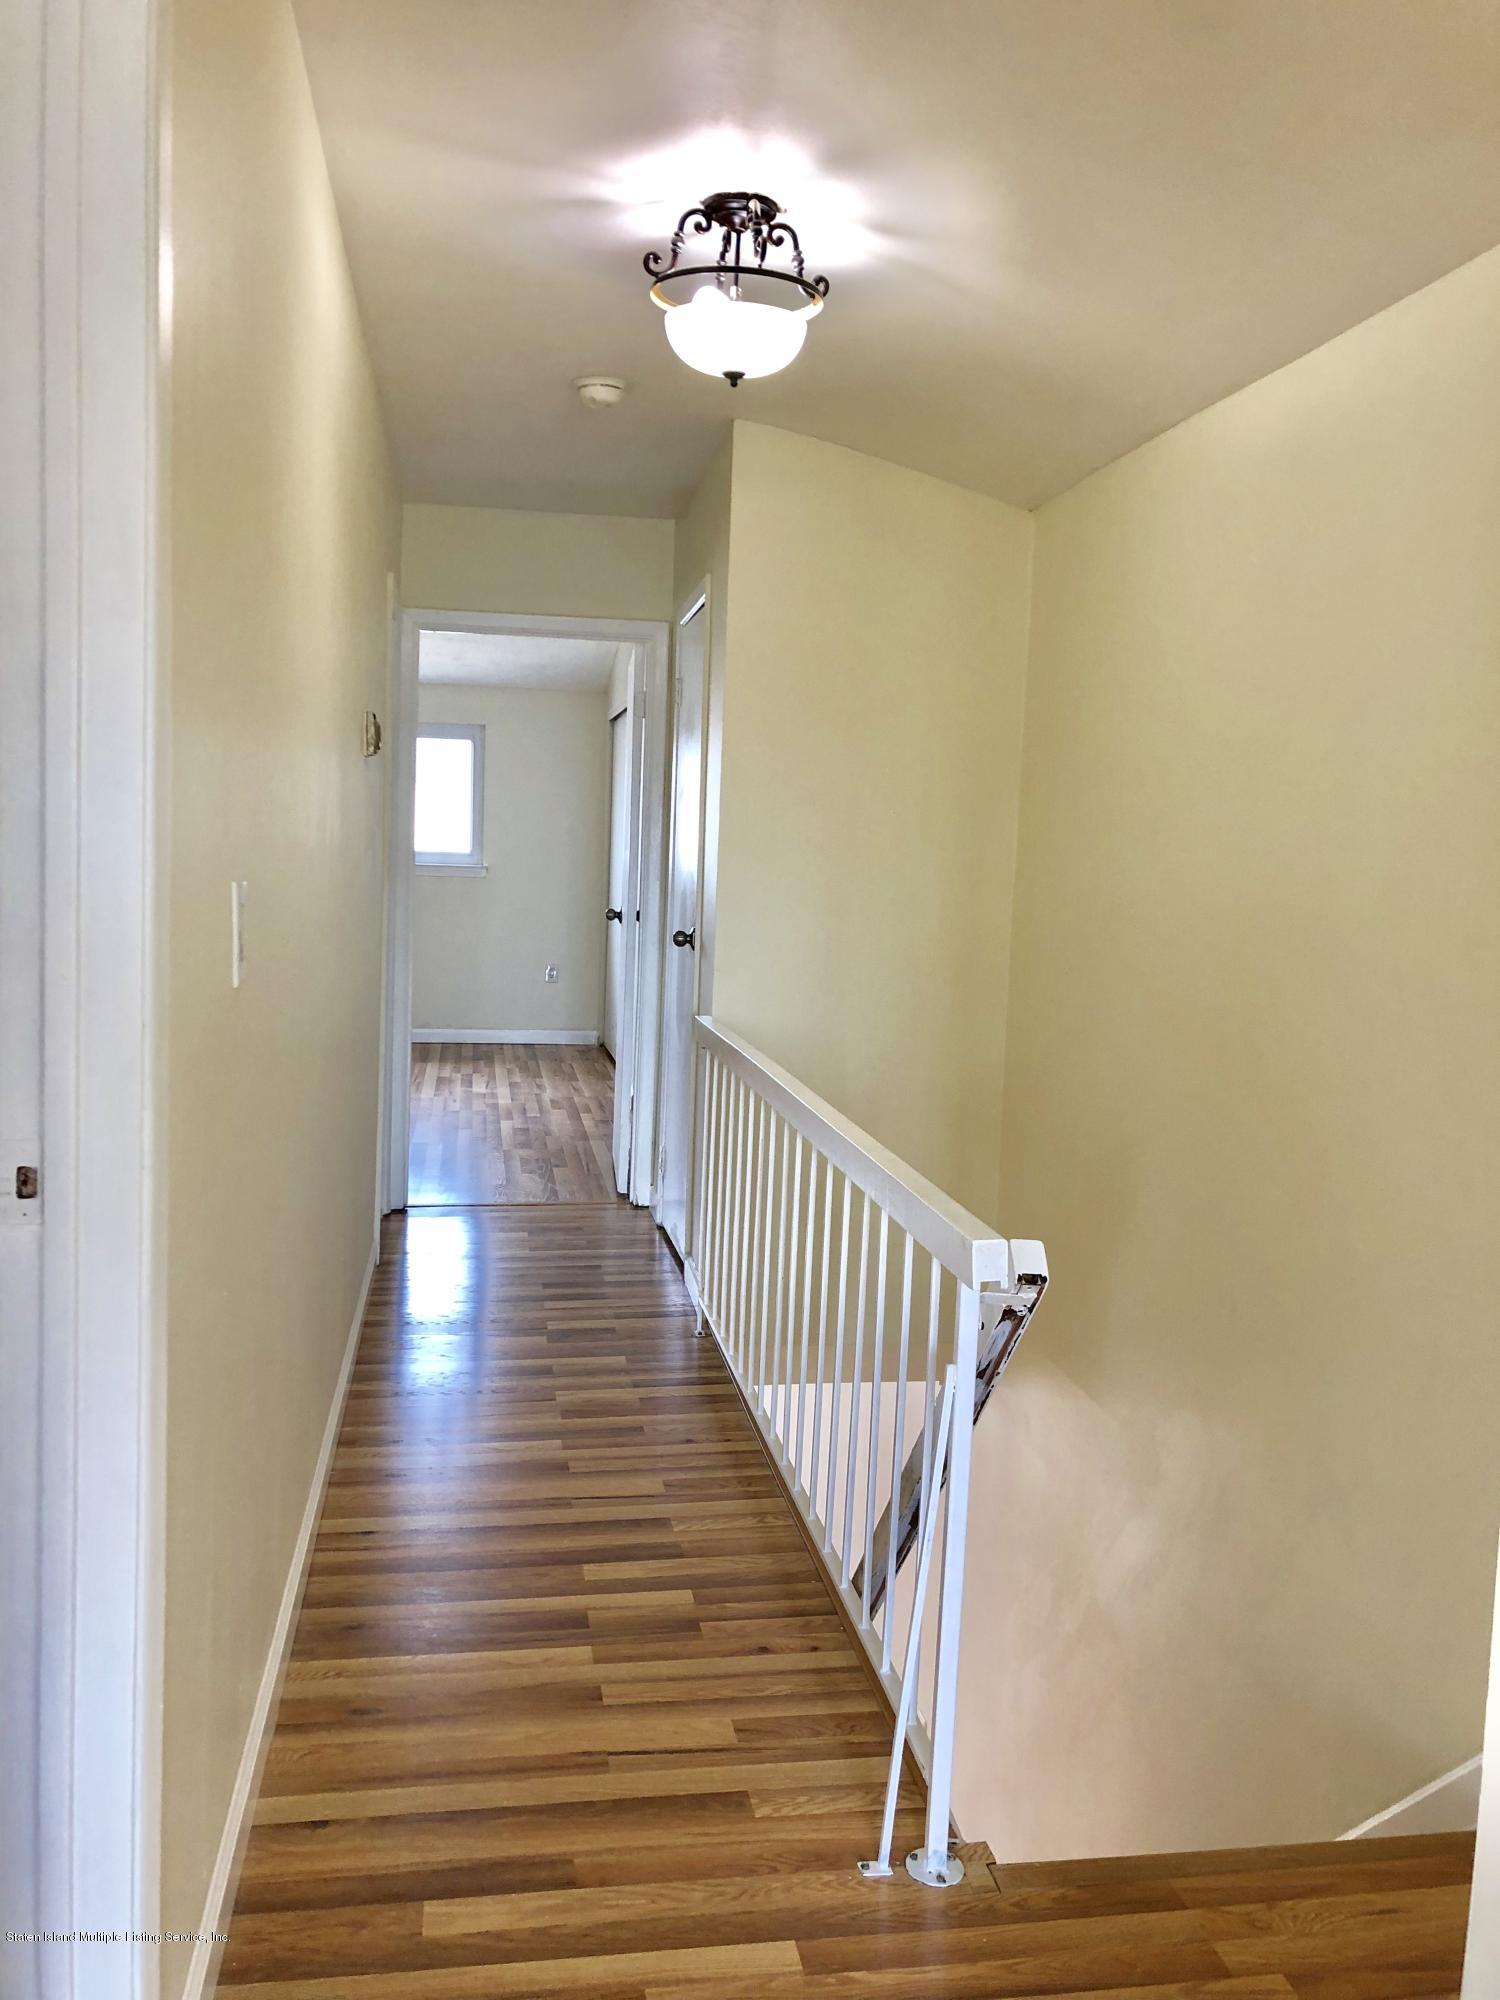 Single Family - Semi-Attached 205 Mcveigh Avenue  Staten Island, NY 10314, MLS-1123847-14